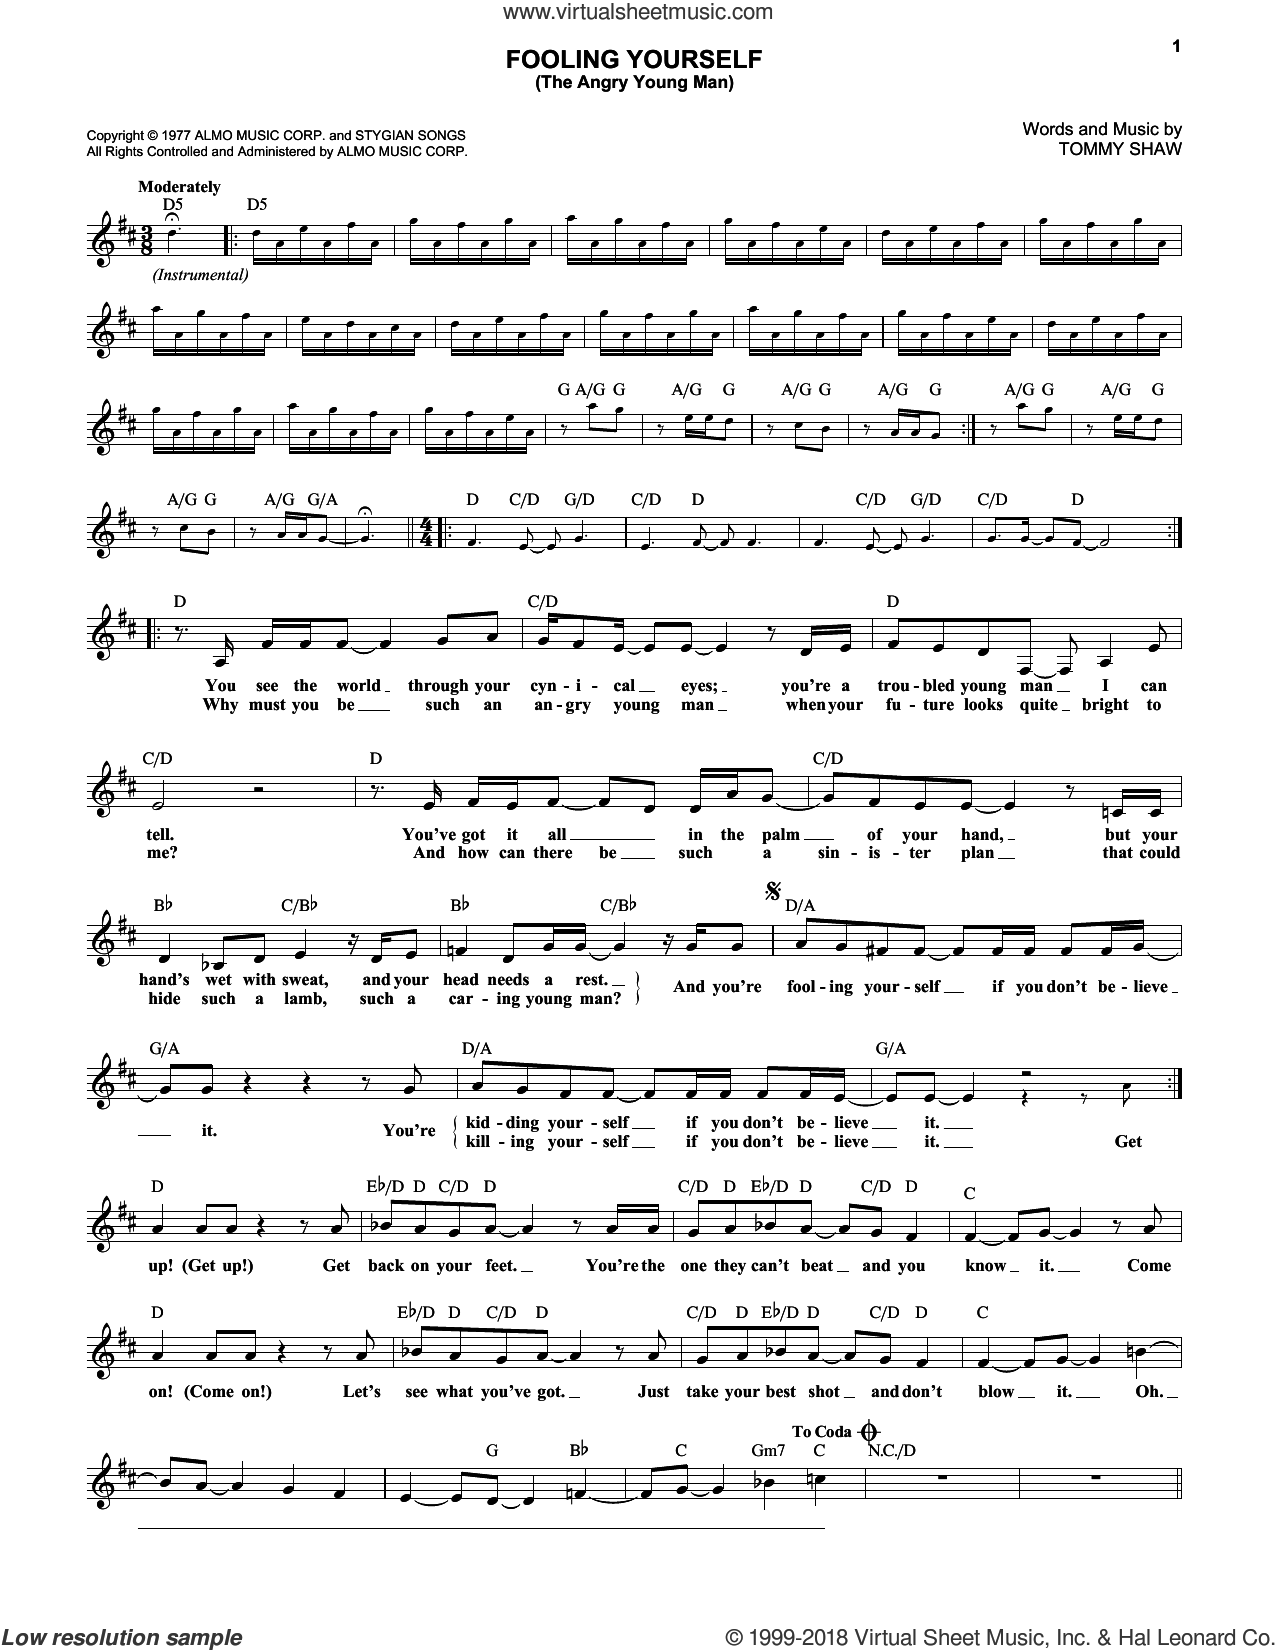 Fooling Yourself (The Angry Young Man) sheet music for voice and other instruments (fake book) by Styx and Tommy Shaw, intermediate skill level